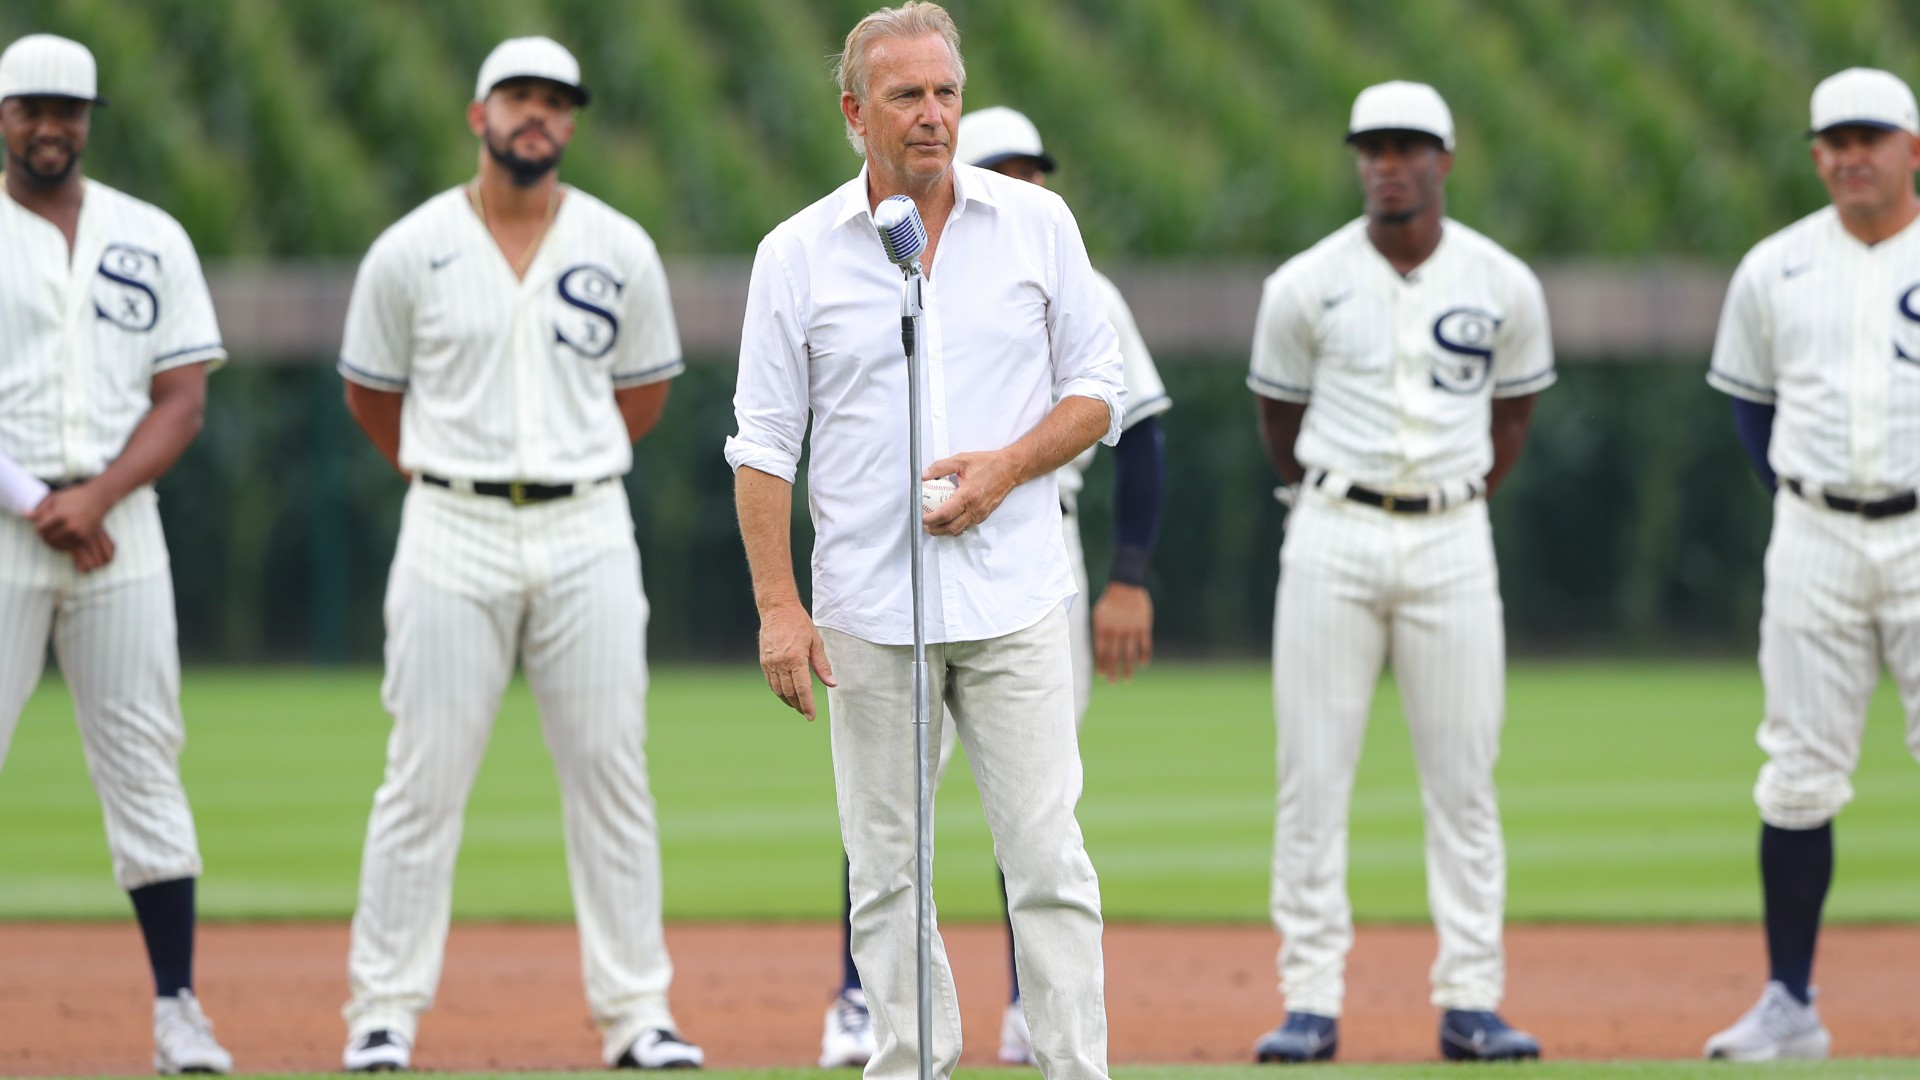 Kevin Costner leads epic entrance onto field at MLB's Field of Dreams Game